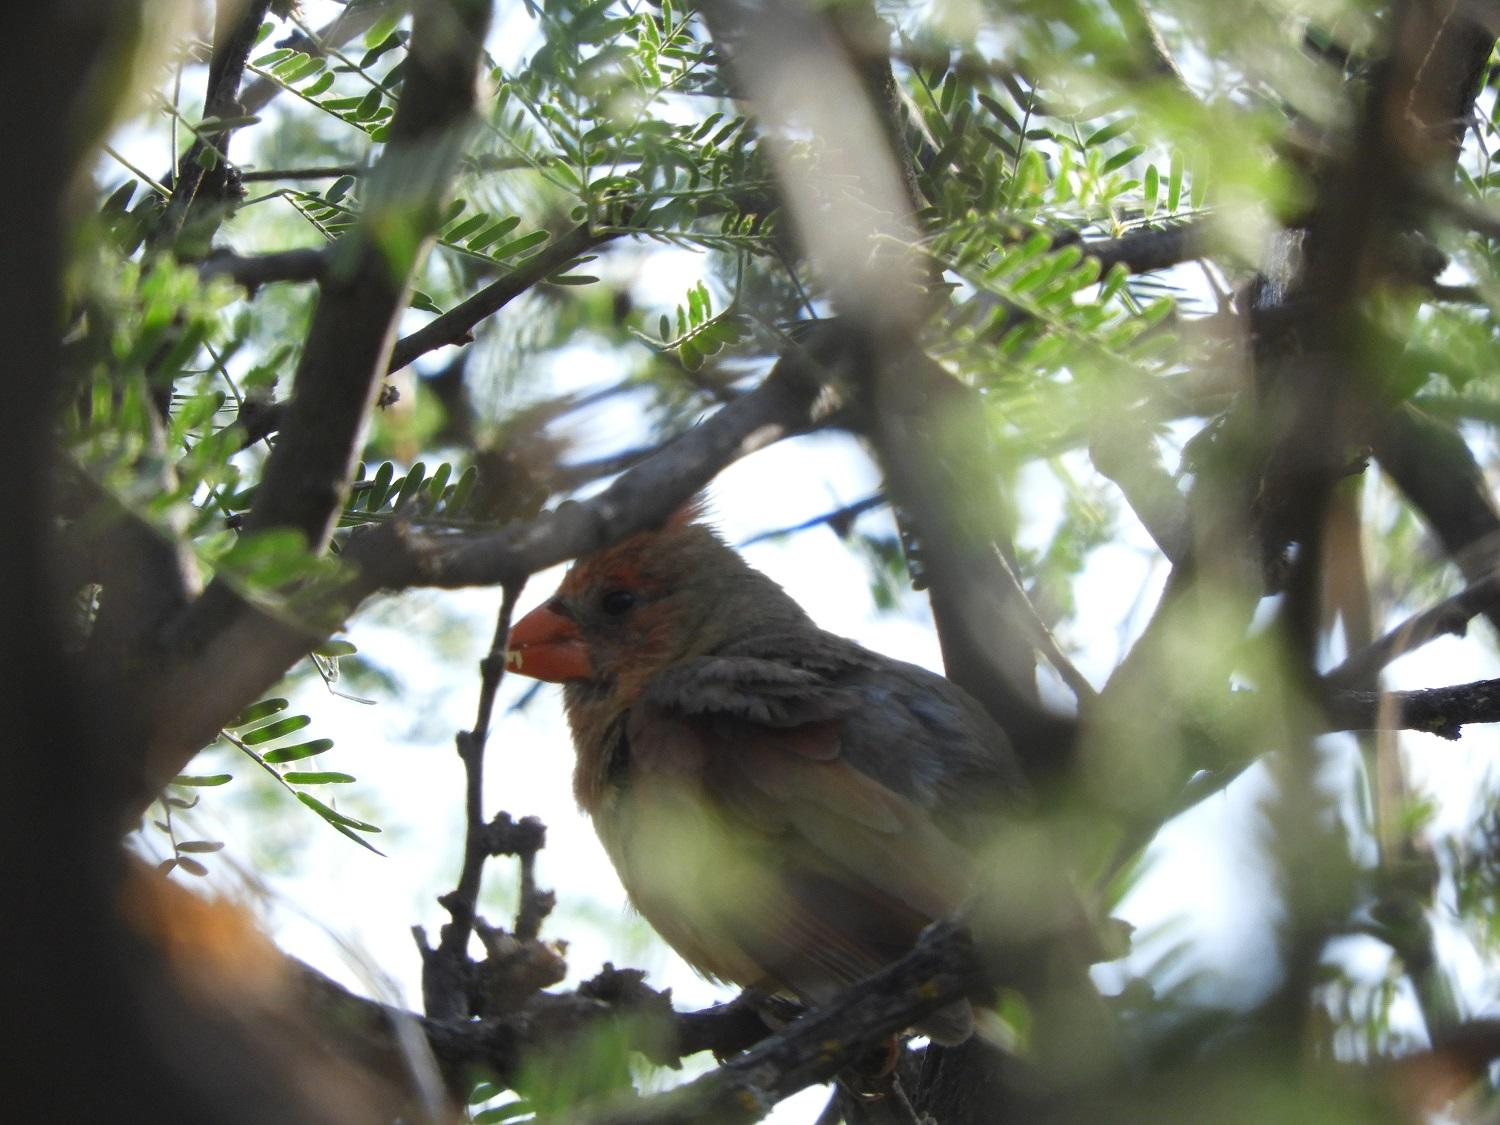 A female Northern Cardinal carefully watches Prescott Audubon surveyors during the 2018 Yellow-billed Cuckoo survey effort.